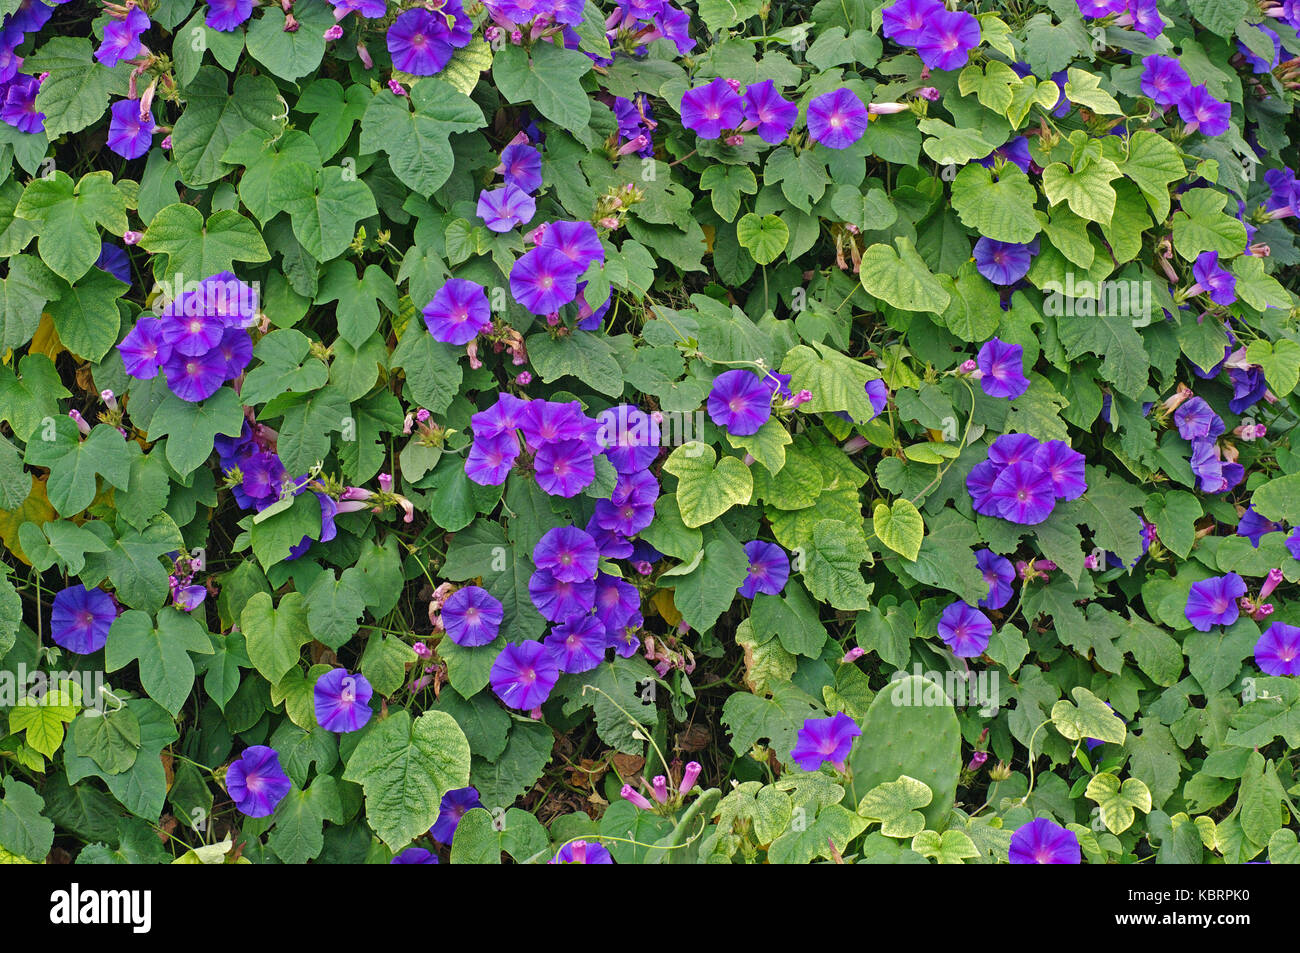 Blue dawn glory stock photos blue dawn glory stock images alamy this is ipomea indica the blue morning glory or blue dawn flower from the izmirmasajfo Choice Image